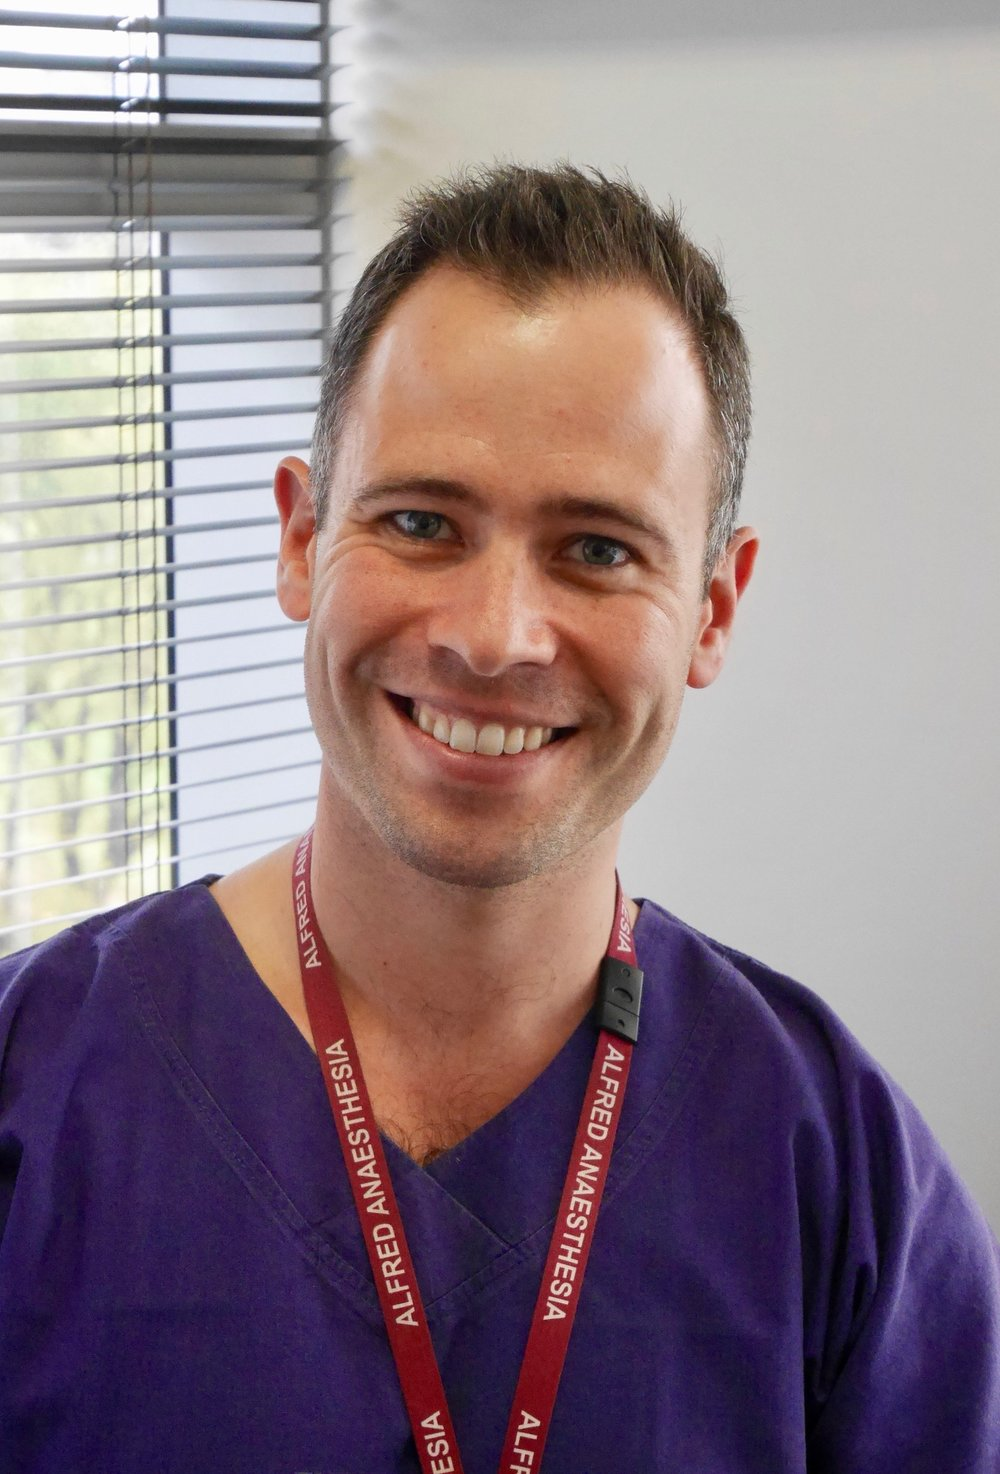 """<p><strong><span style=""""color:#002975"""">Simon Hendel</strong>Anaesthetist and Trauma Physician<a href=/simon-hendel>More →</a></p>"""